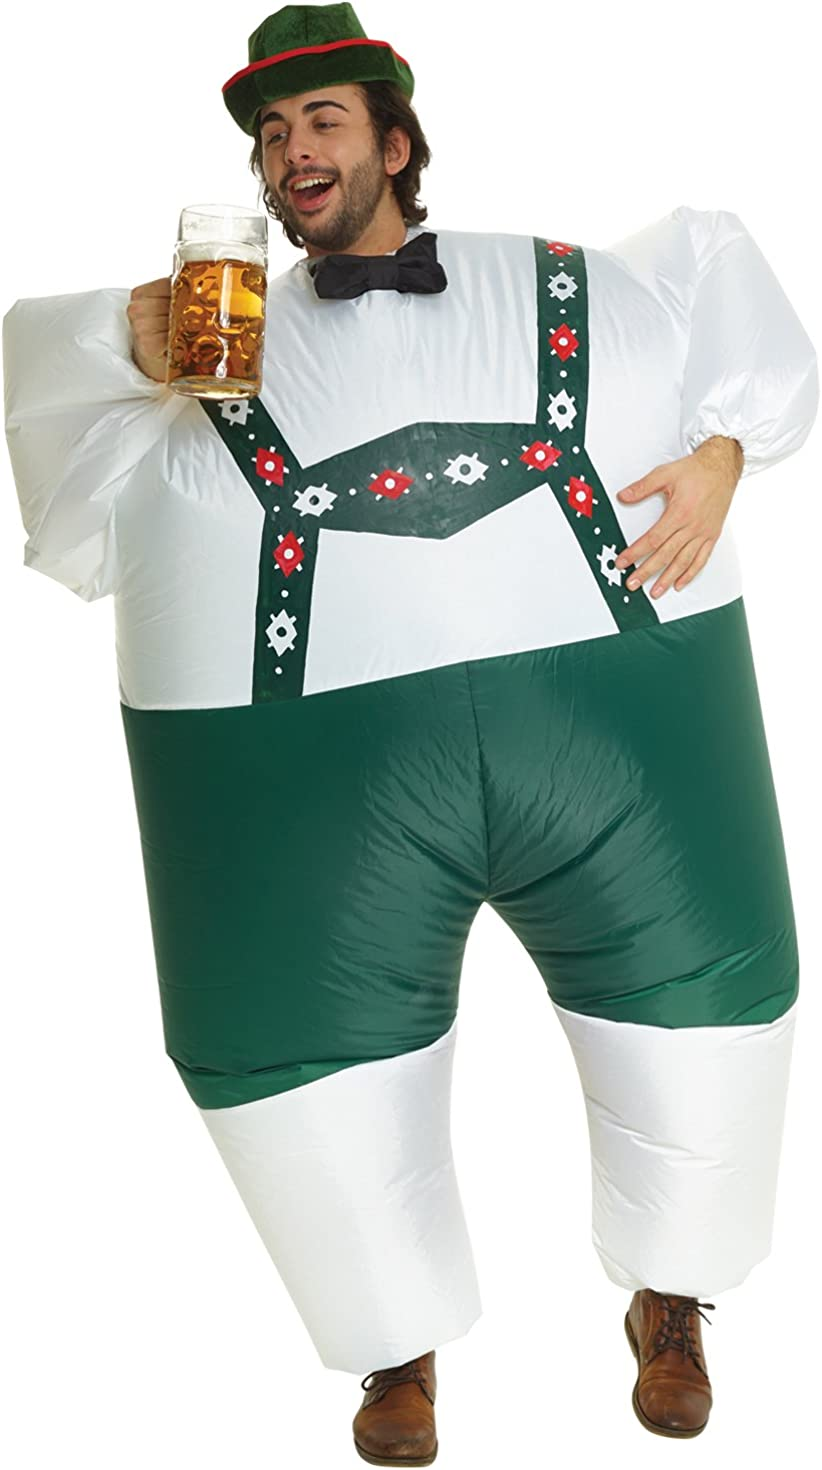 Morph Inflatable Adult & Childrens MegaMorph Fat Suit Costumes - One Size